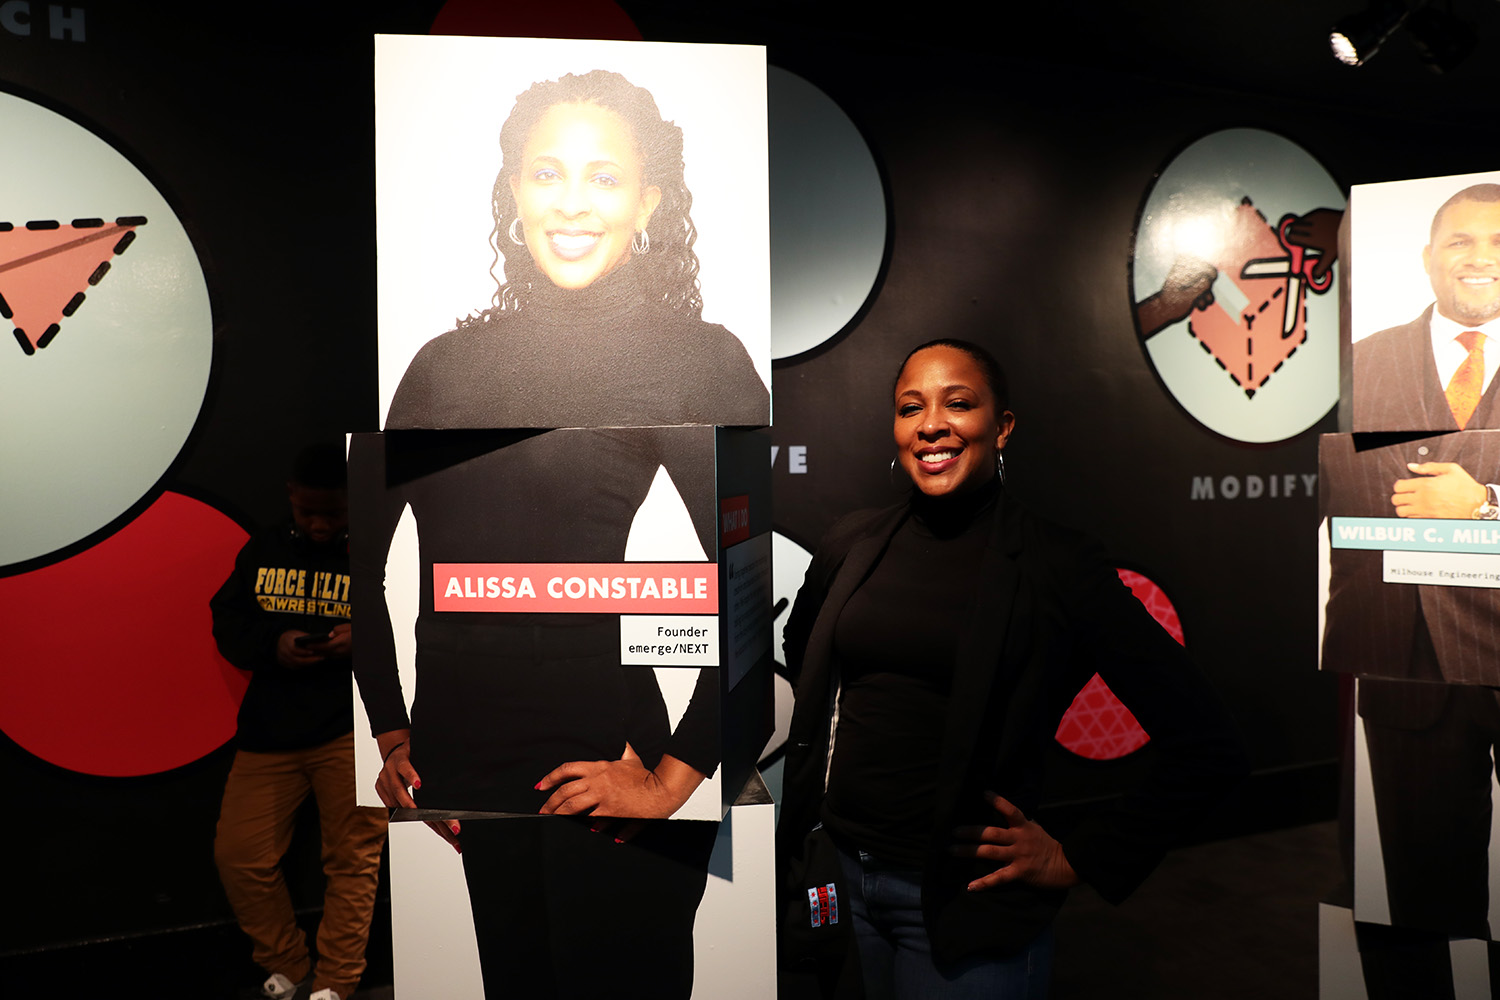 "Alissa Constable, founder of emerge/NEXT, stands next to her image at the Innovation Studio. Guests are greeted with images and video of Constable and Shala. Black Tech Mecca CEO Fabian Elliott, Sugar Gamers founder Keisha Howard, Milhouse Engineering and Construction Chairman and CEO Wilbur C. Milhouse III, Lighthouse Whole Food Grille founder and owner Erik ""Rico"" Nance, and Dr. Eric Whitaker, physician and investor at Chicago Area Health and Medical Careers program. (Arionne Nettles/WBEZ)"